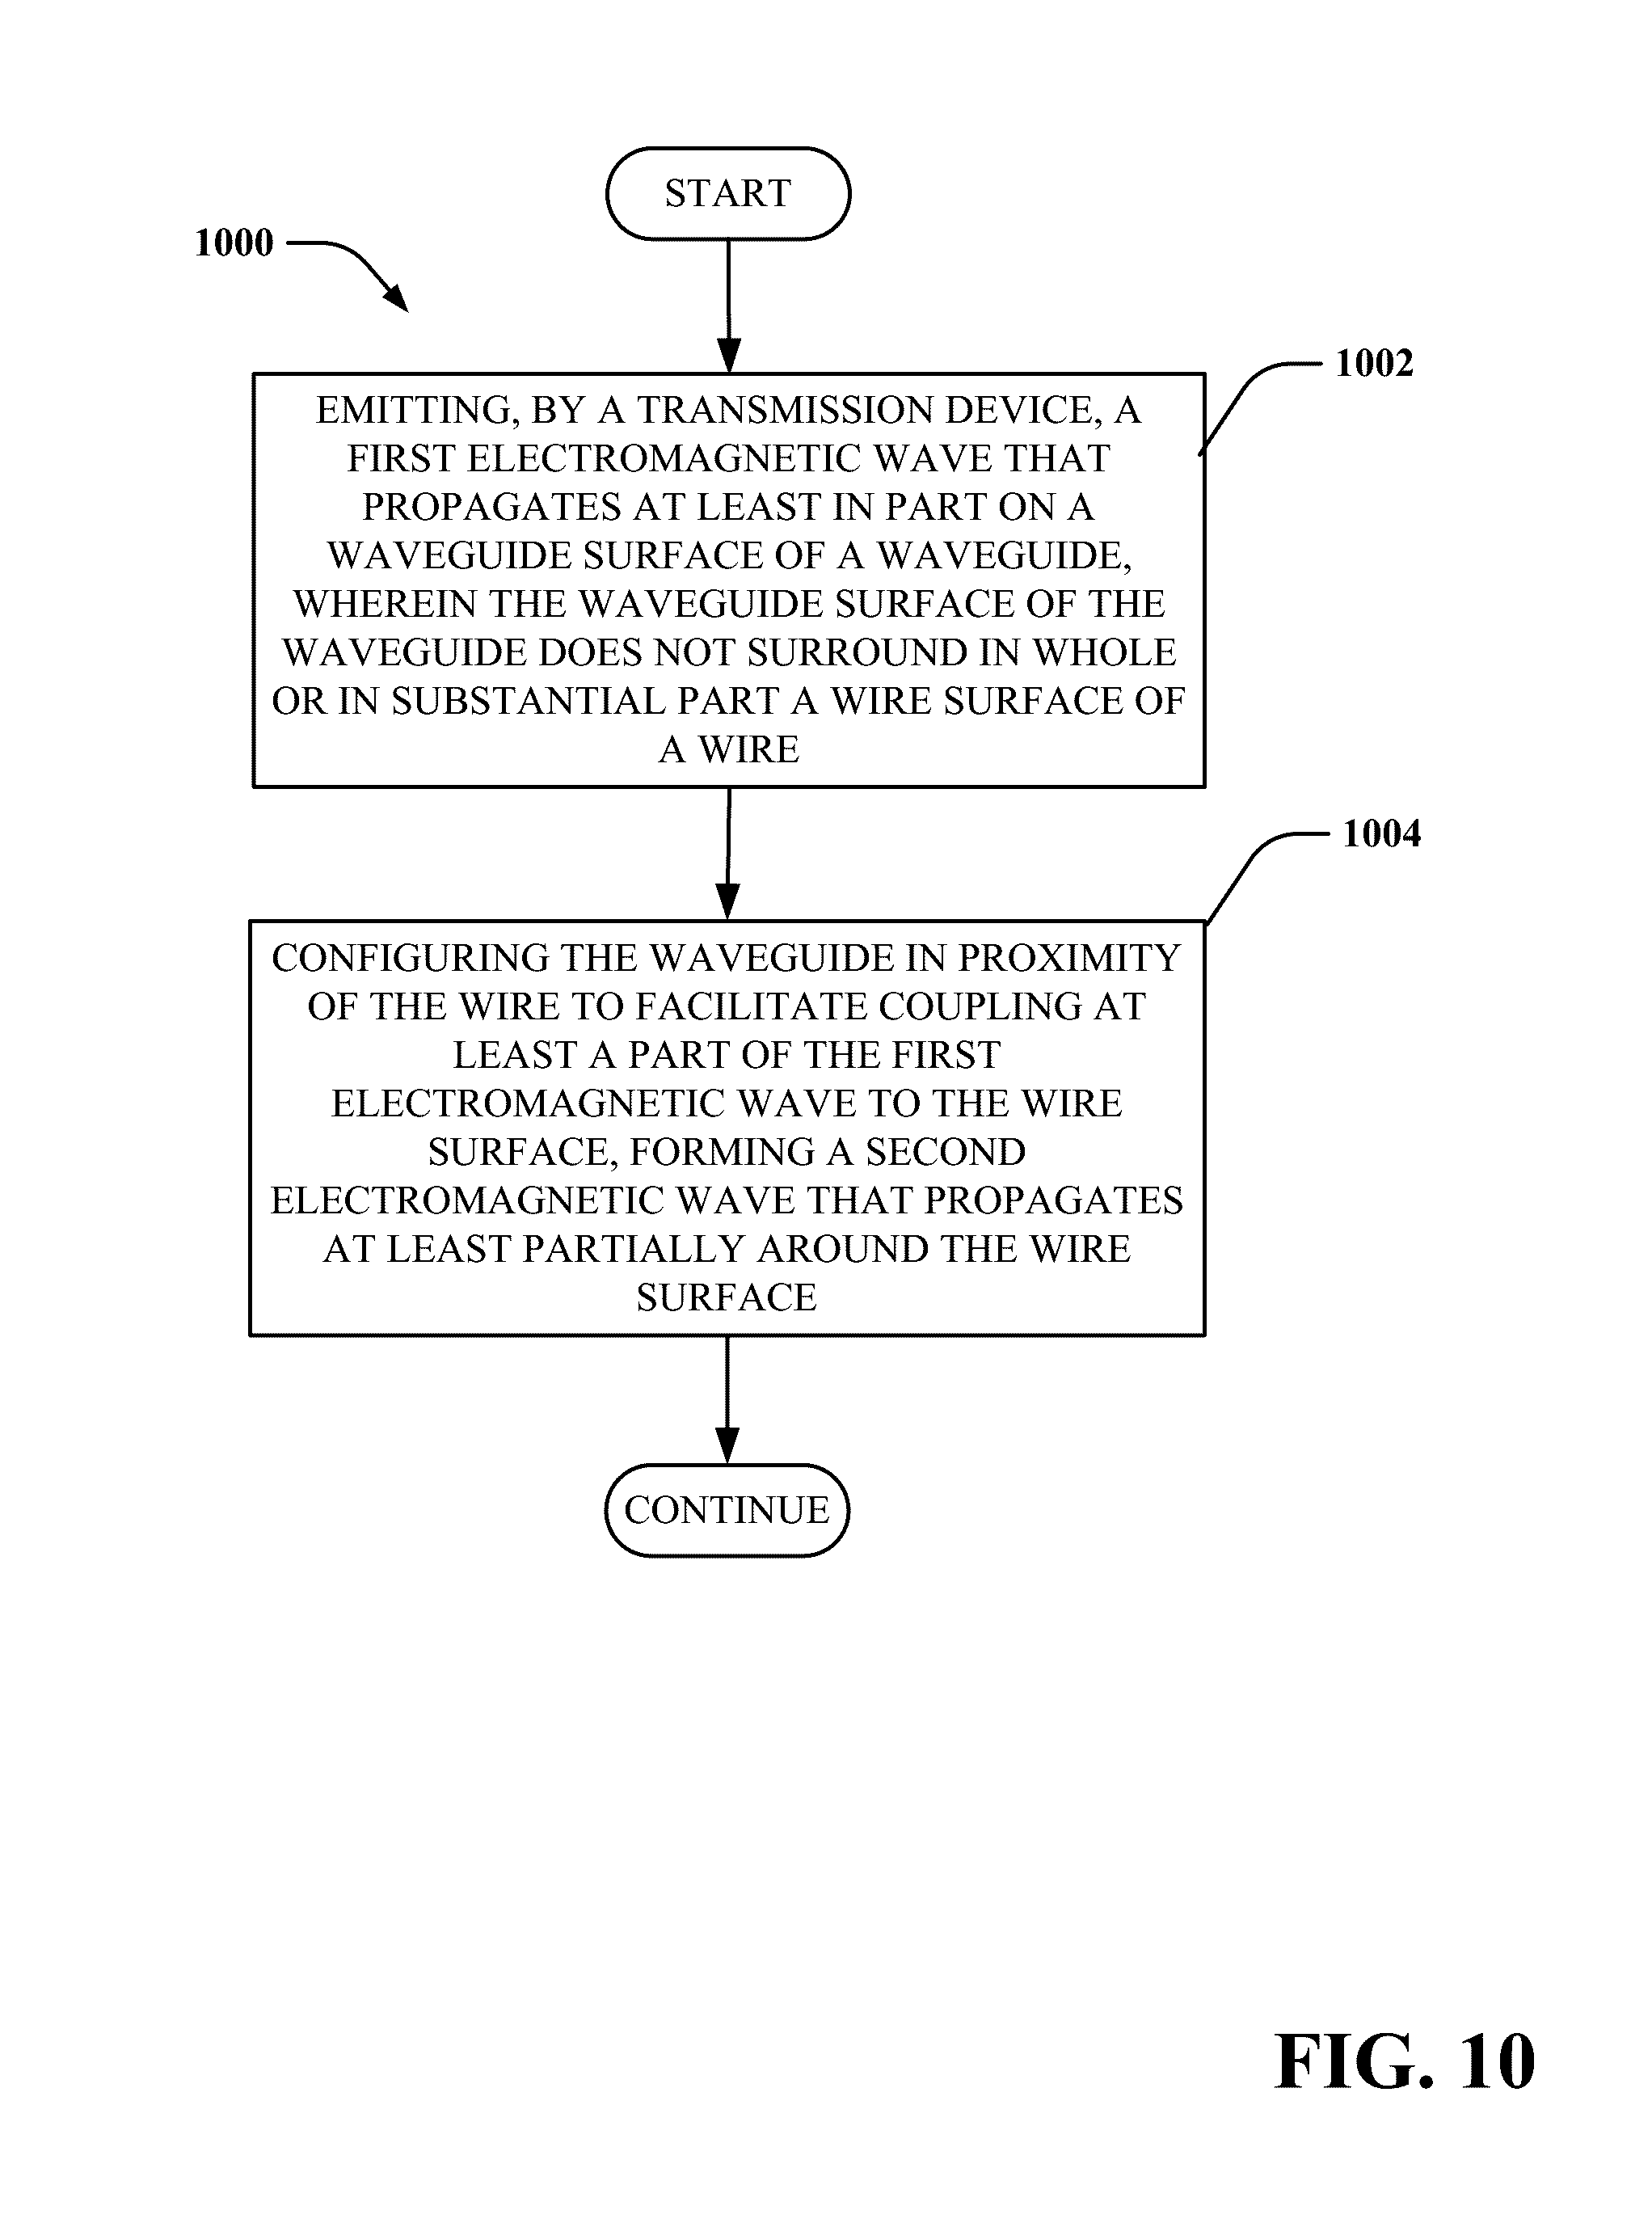 Us9627768b2 Guided Wave Transmission Device With Non Fundamental Radio Waves Diagram The Basic Shape Of Mode Propagation And Methods For Use Therewith Google Patents